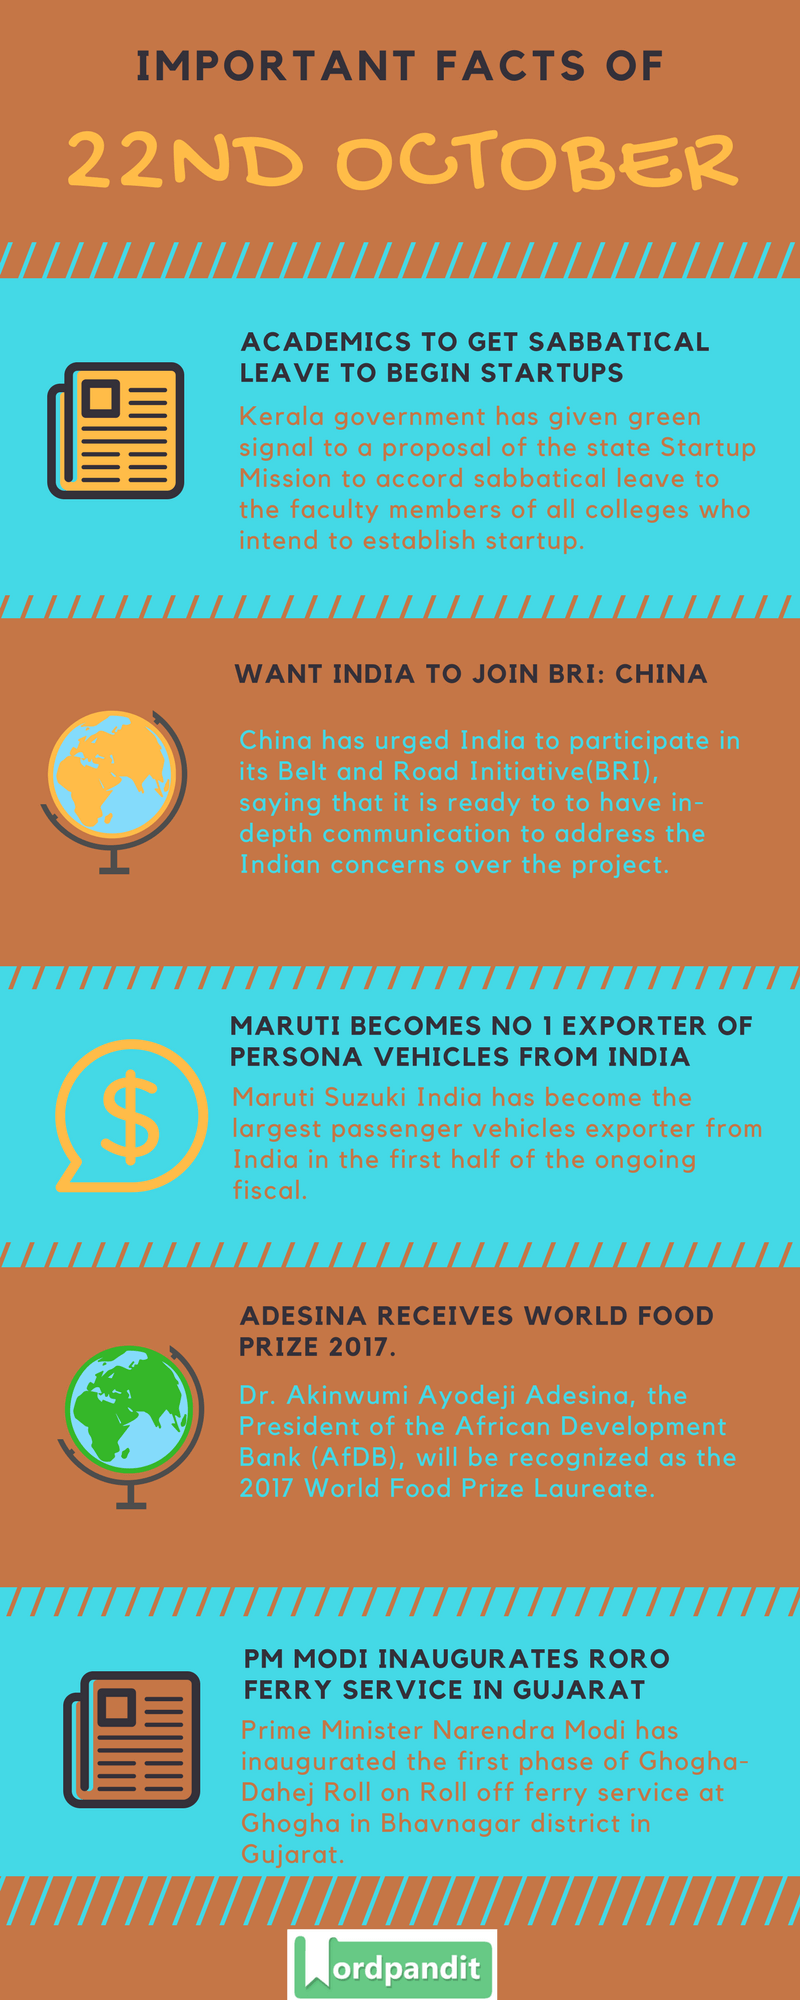 Daily-Current-Affairs-22-october-2017-Current-Affairs-Quiz-october-22-2017-Current-Affairs-Infographic